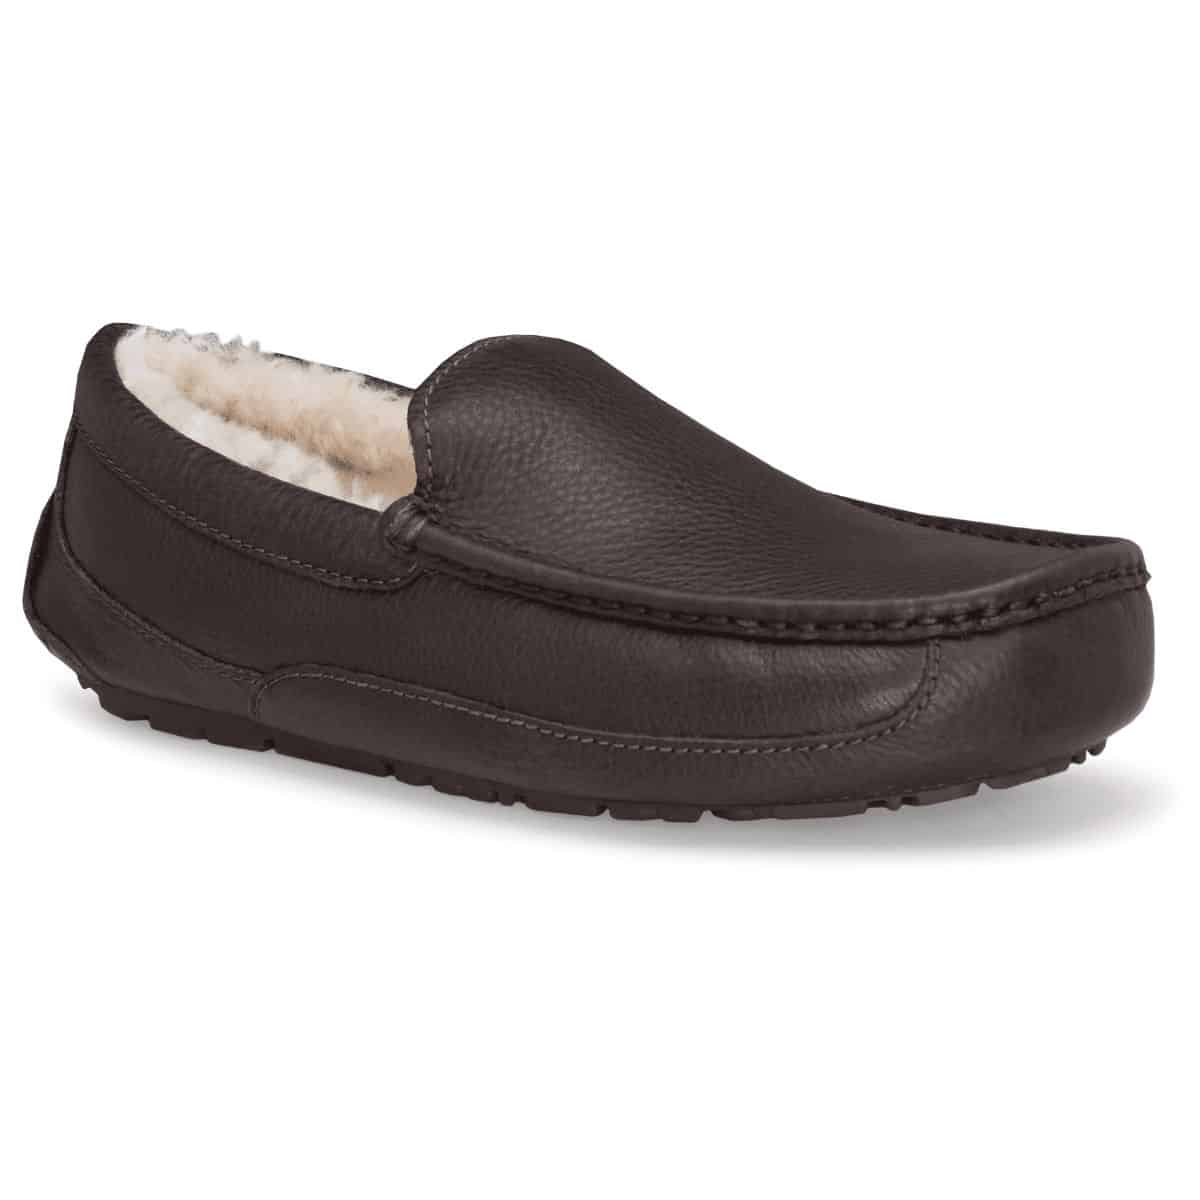 Brown leather moccassin slipper.